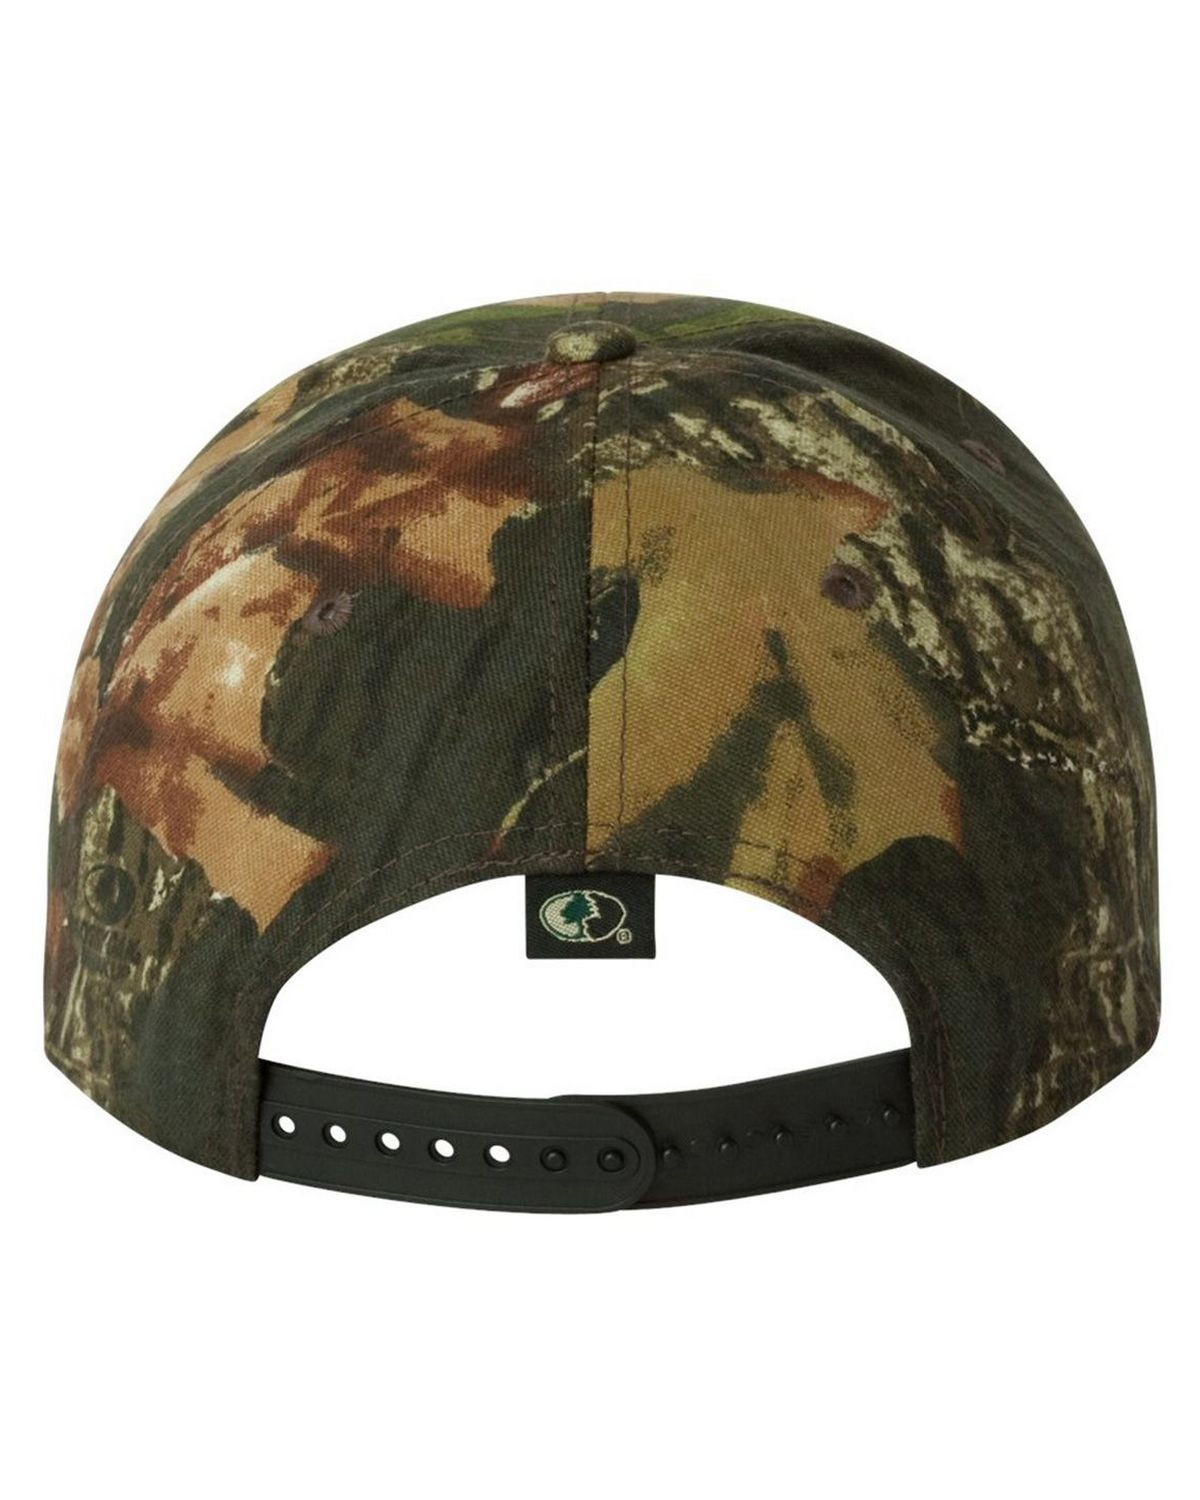 34b4e14bb8fa2 Outdoor Cap 301IS Camouflage Cap - Free Shipping Available